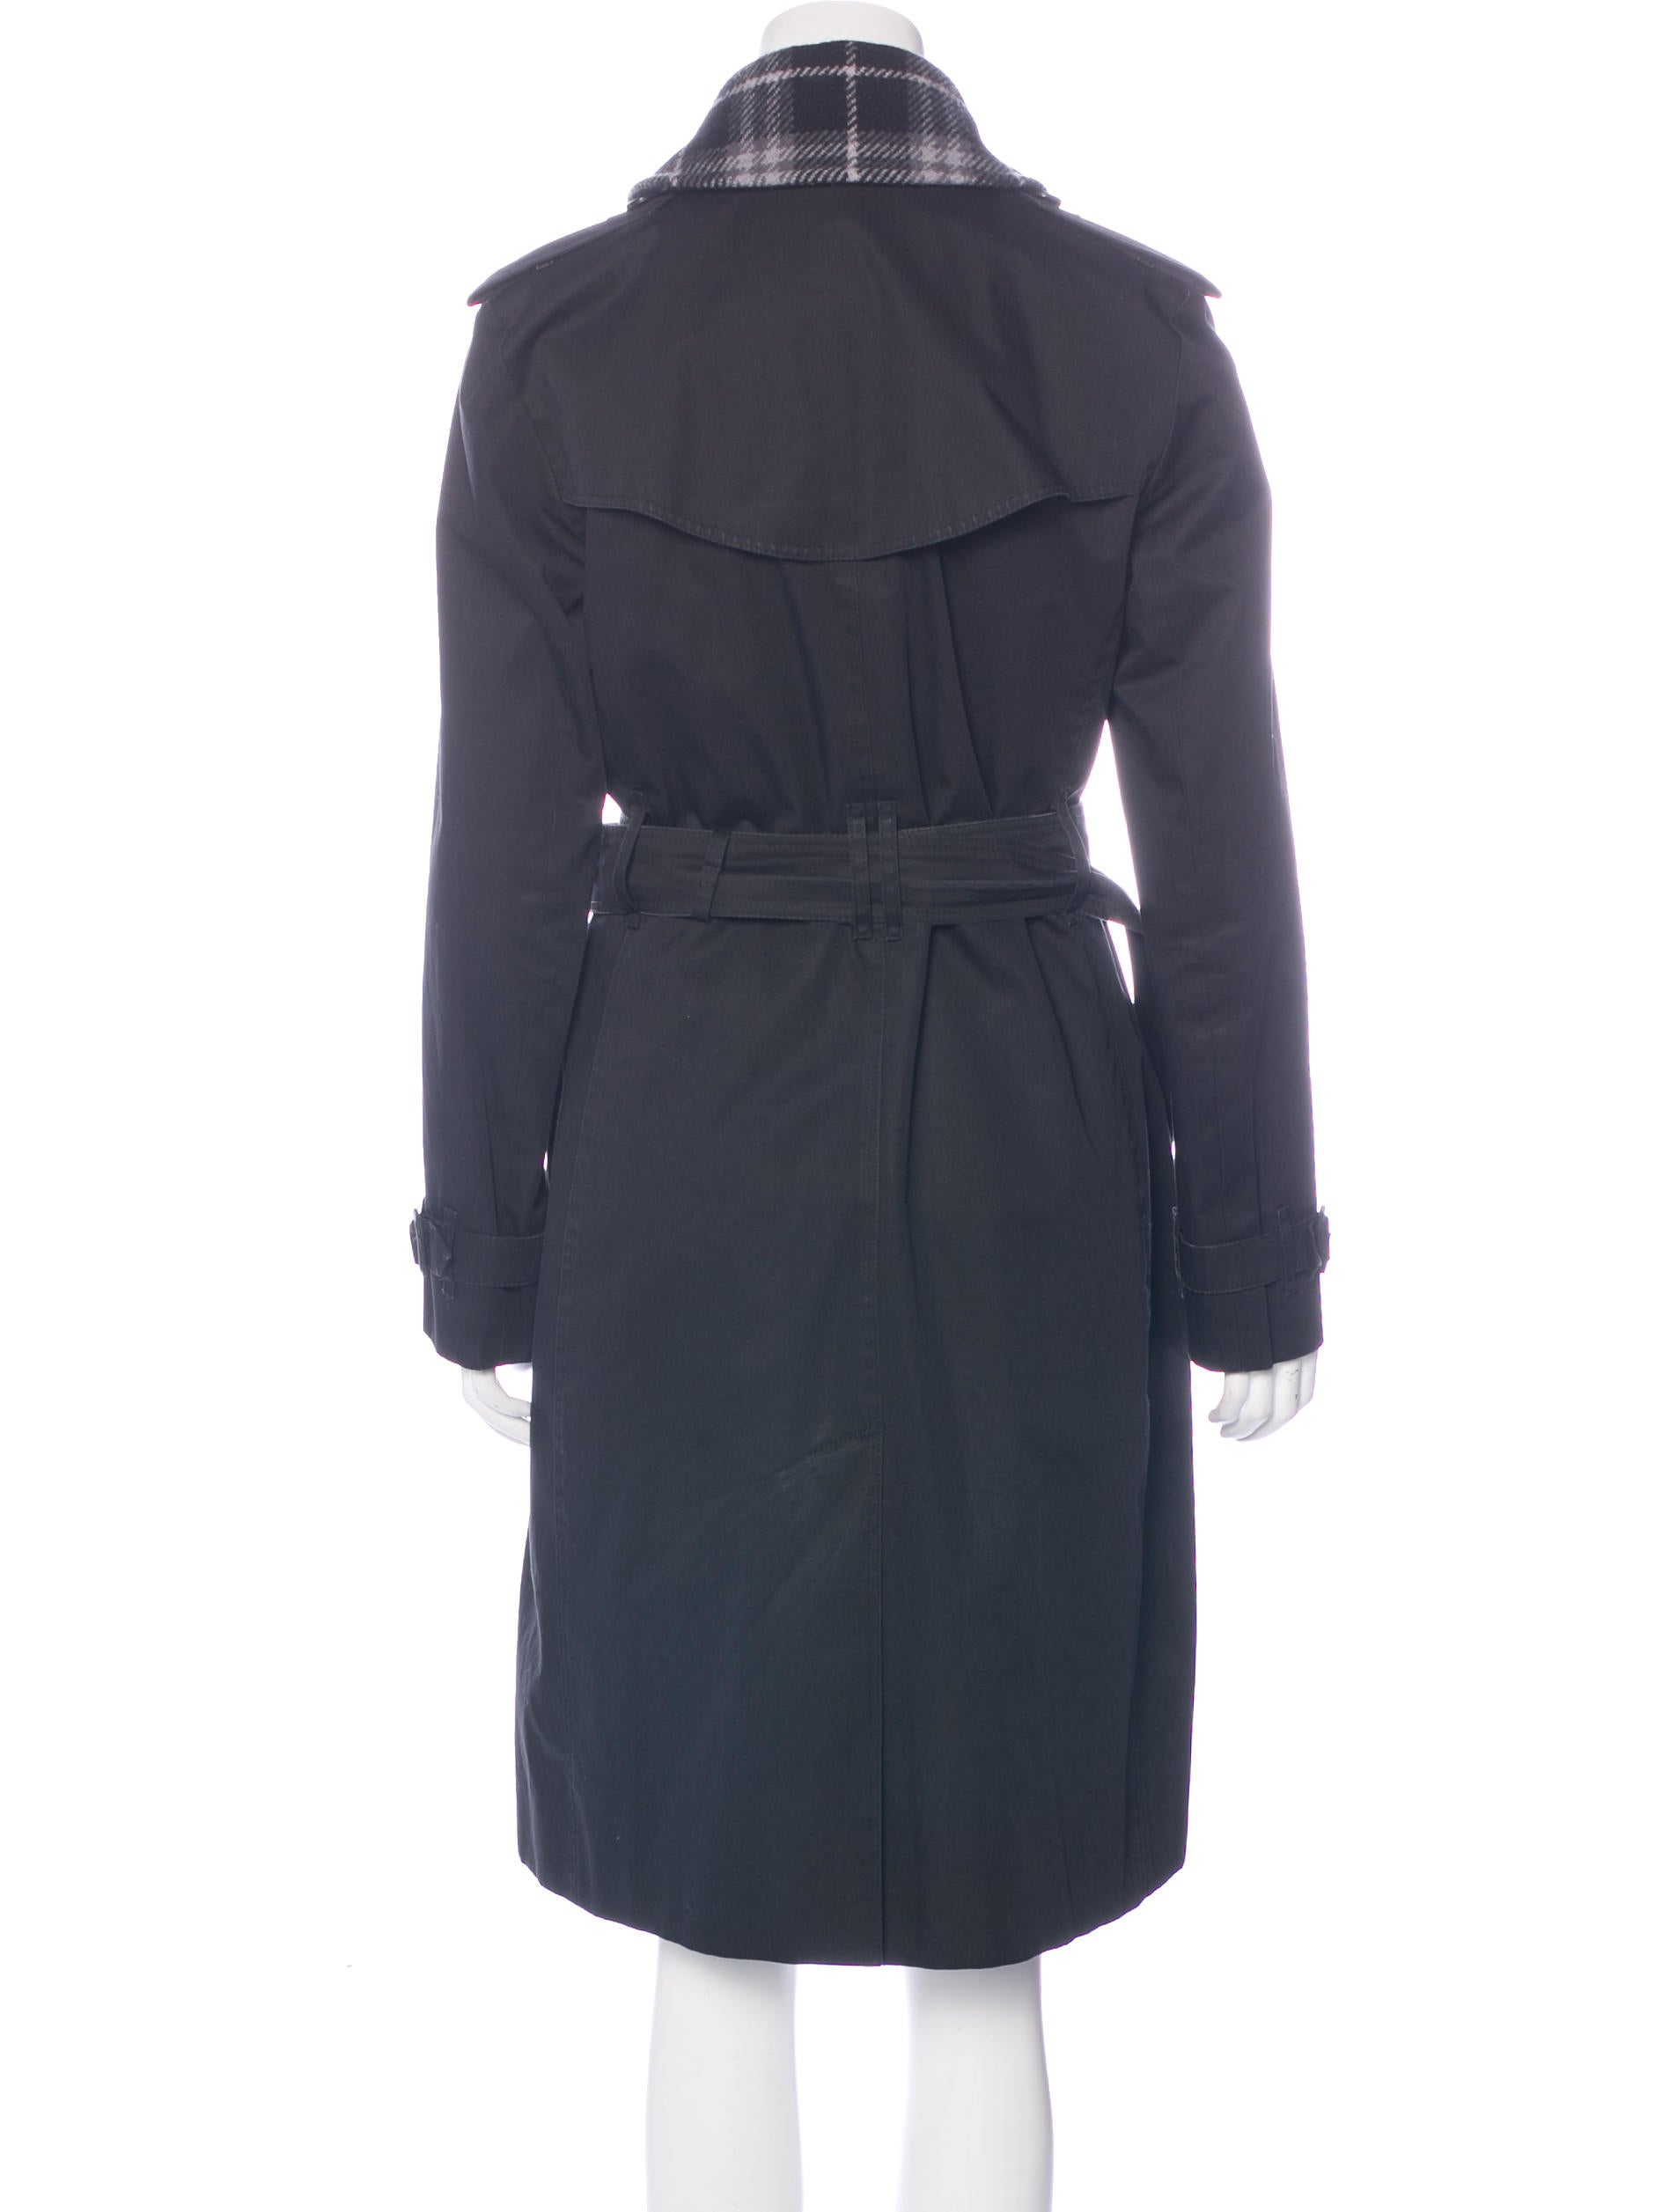 Shop Gallery Women's Jackets & Coats - Trench Coats at up to 70% off! Get the lowest price on your favorite brands at Poshmark. Poshmark makes shopping fun, affordable & easy!